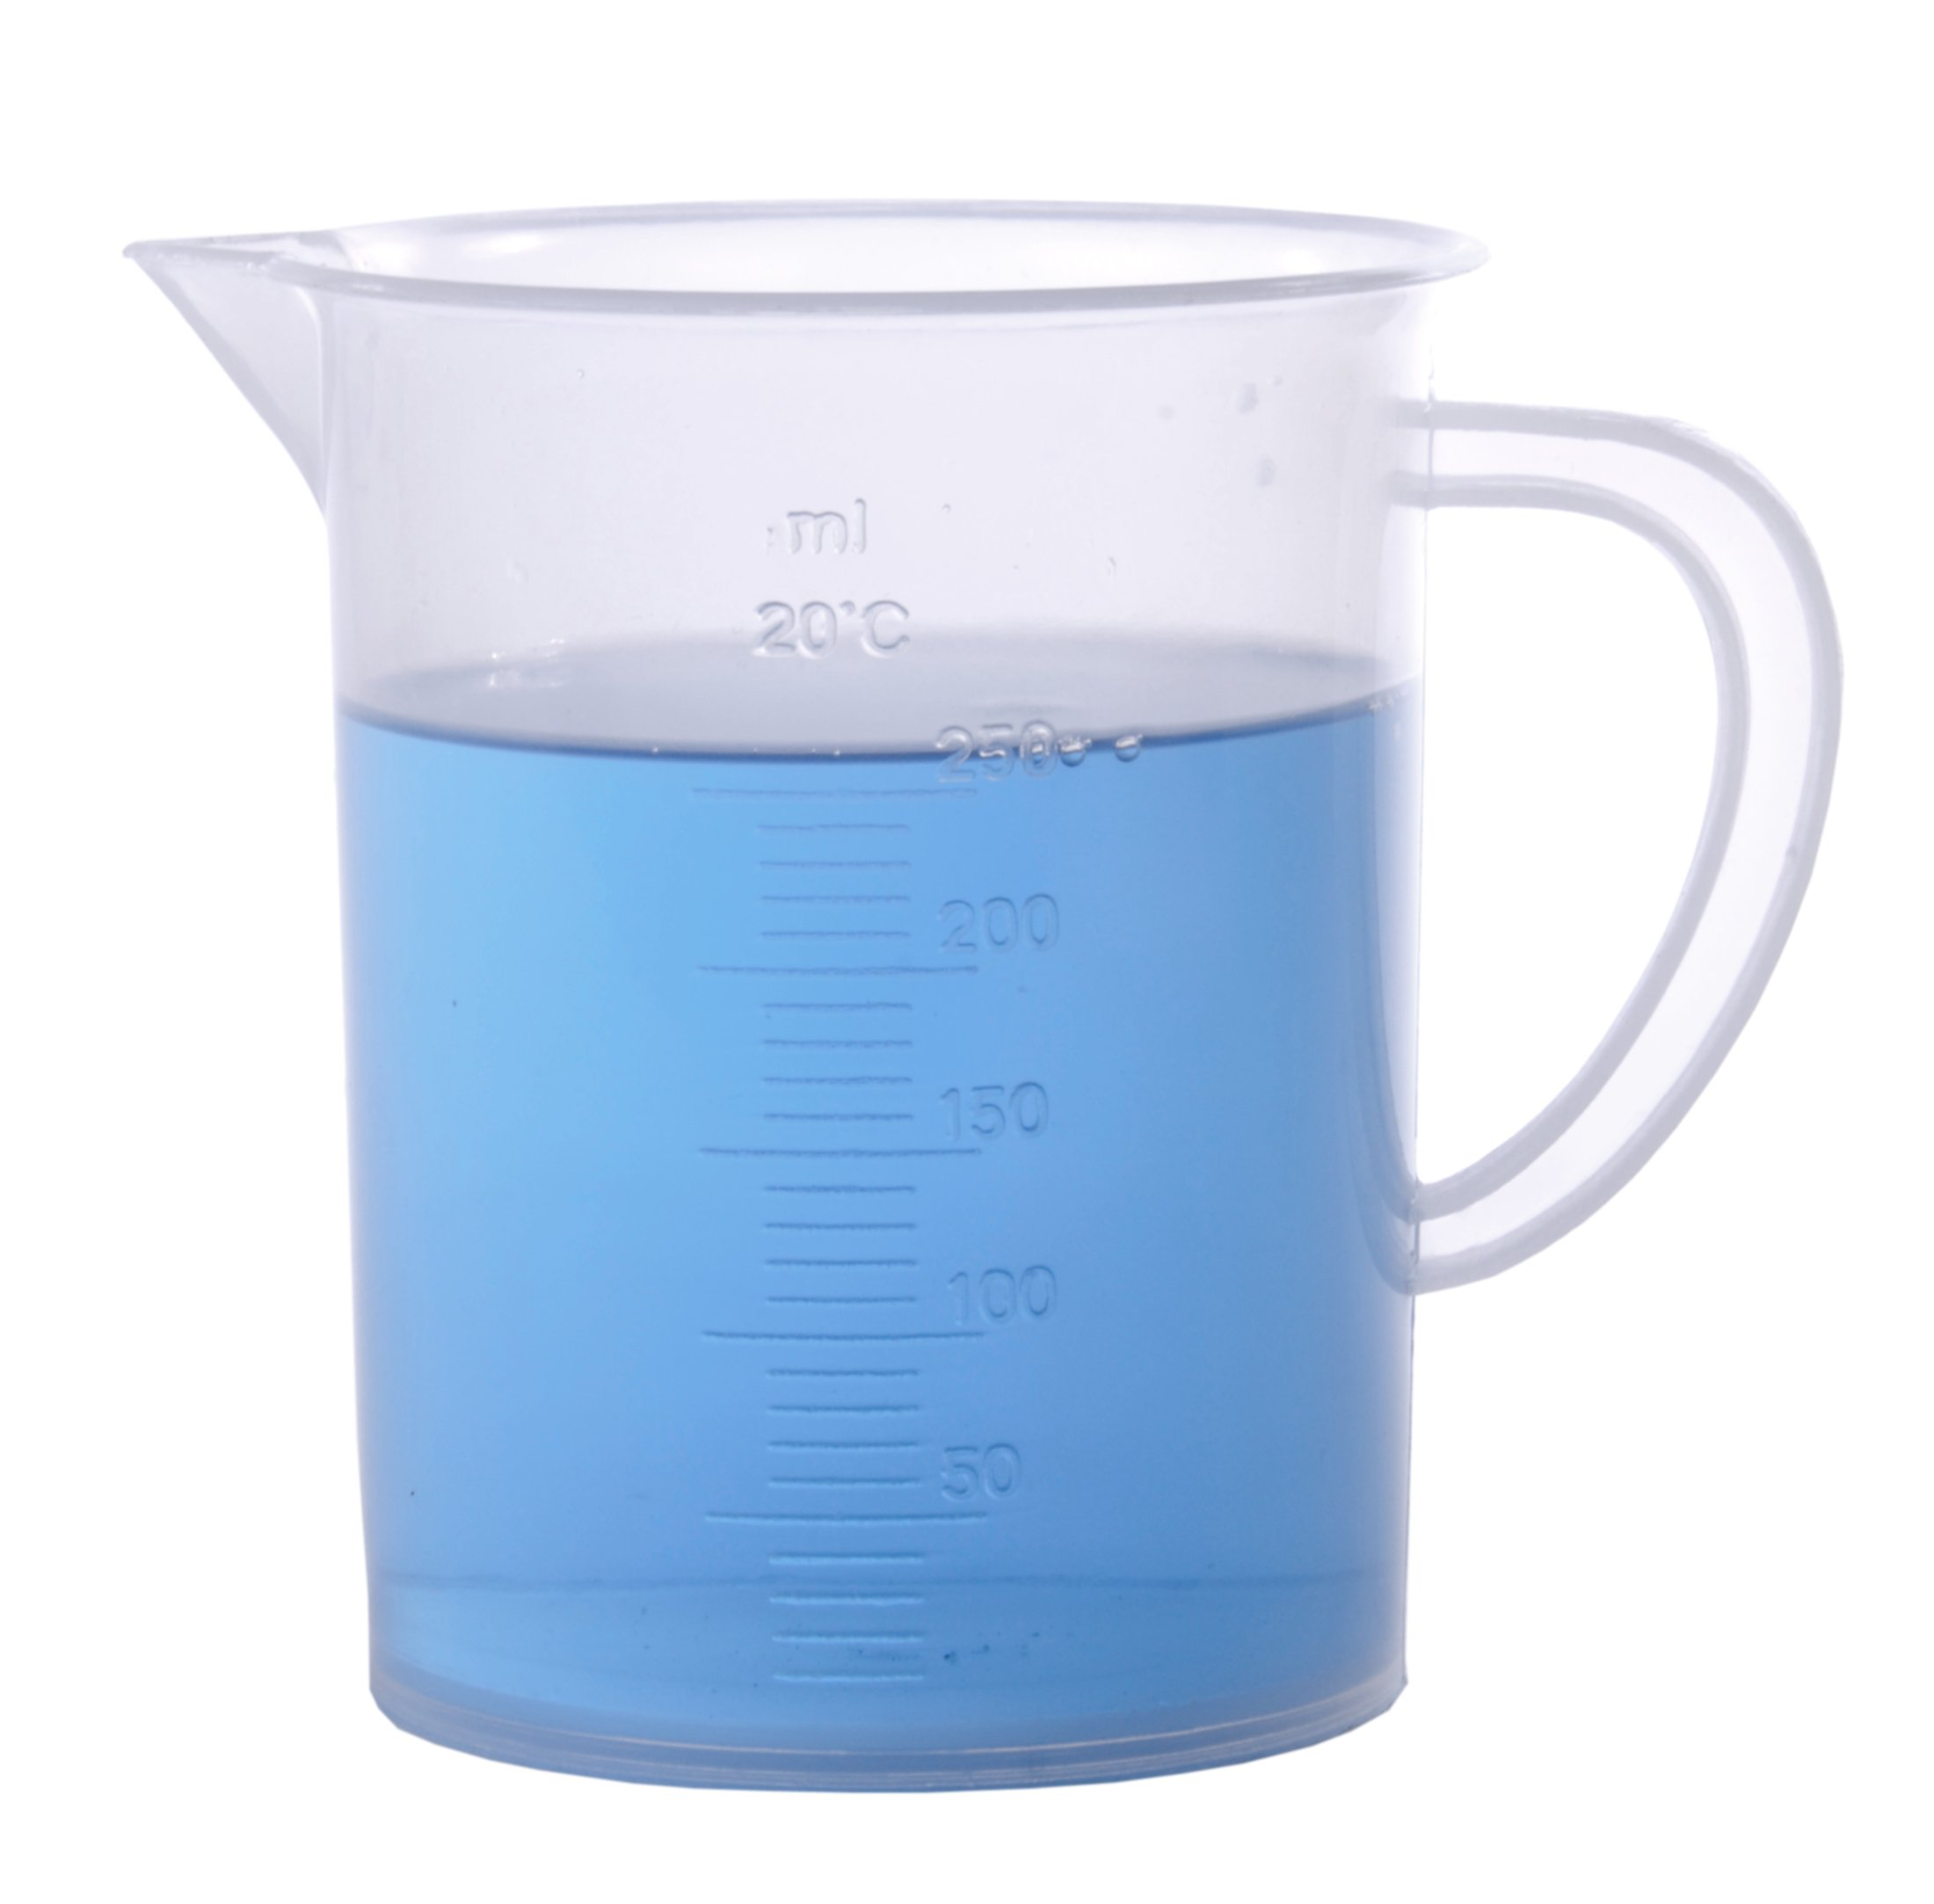 American Educational Polypropylene 250mL Measuring Jug with Handle (Bundle of 5) by American Educational Products